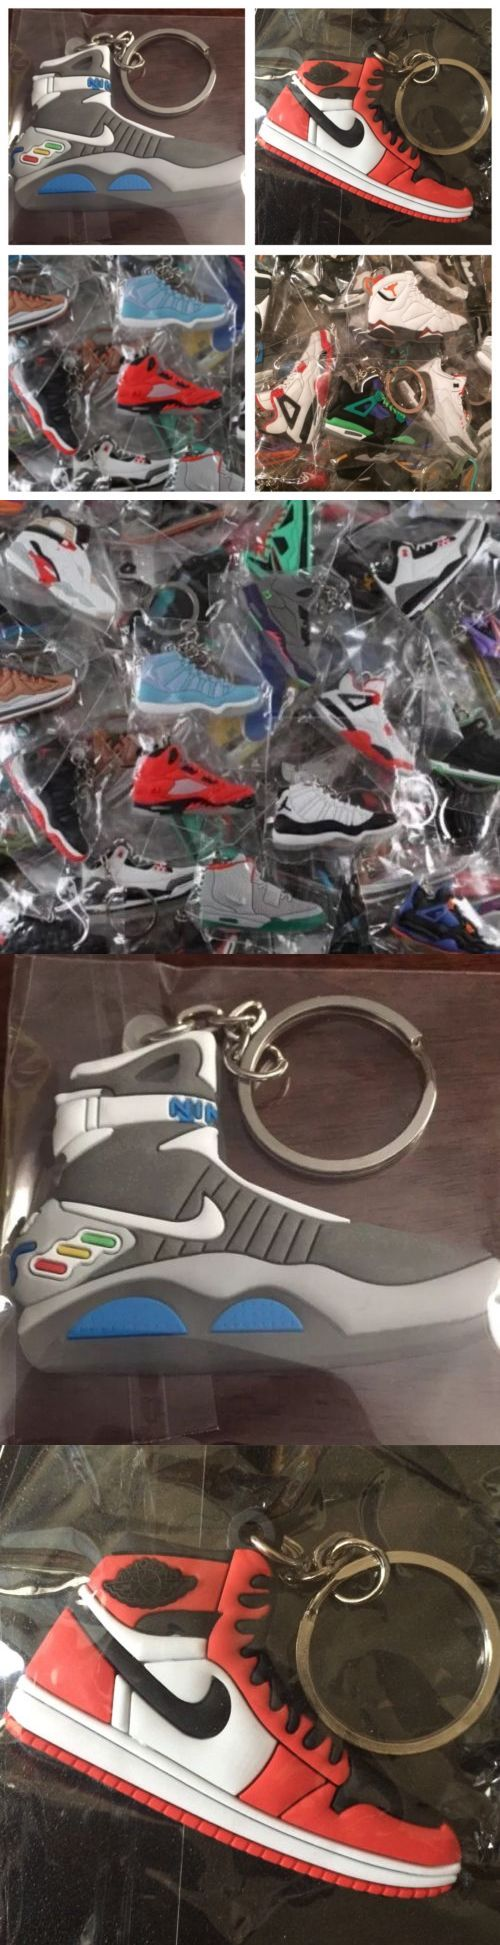 Key Chains Rings and Cases 52373: 30 Jordan, Yeezy, Lebron, Misc. Shoe Keychains + Free Gift - Random Picked By Us -> BUY IT NOW ONLY: $35 on eBay!